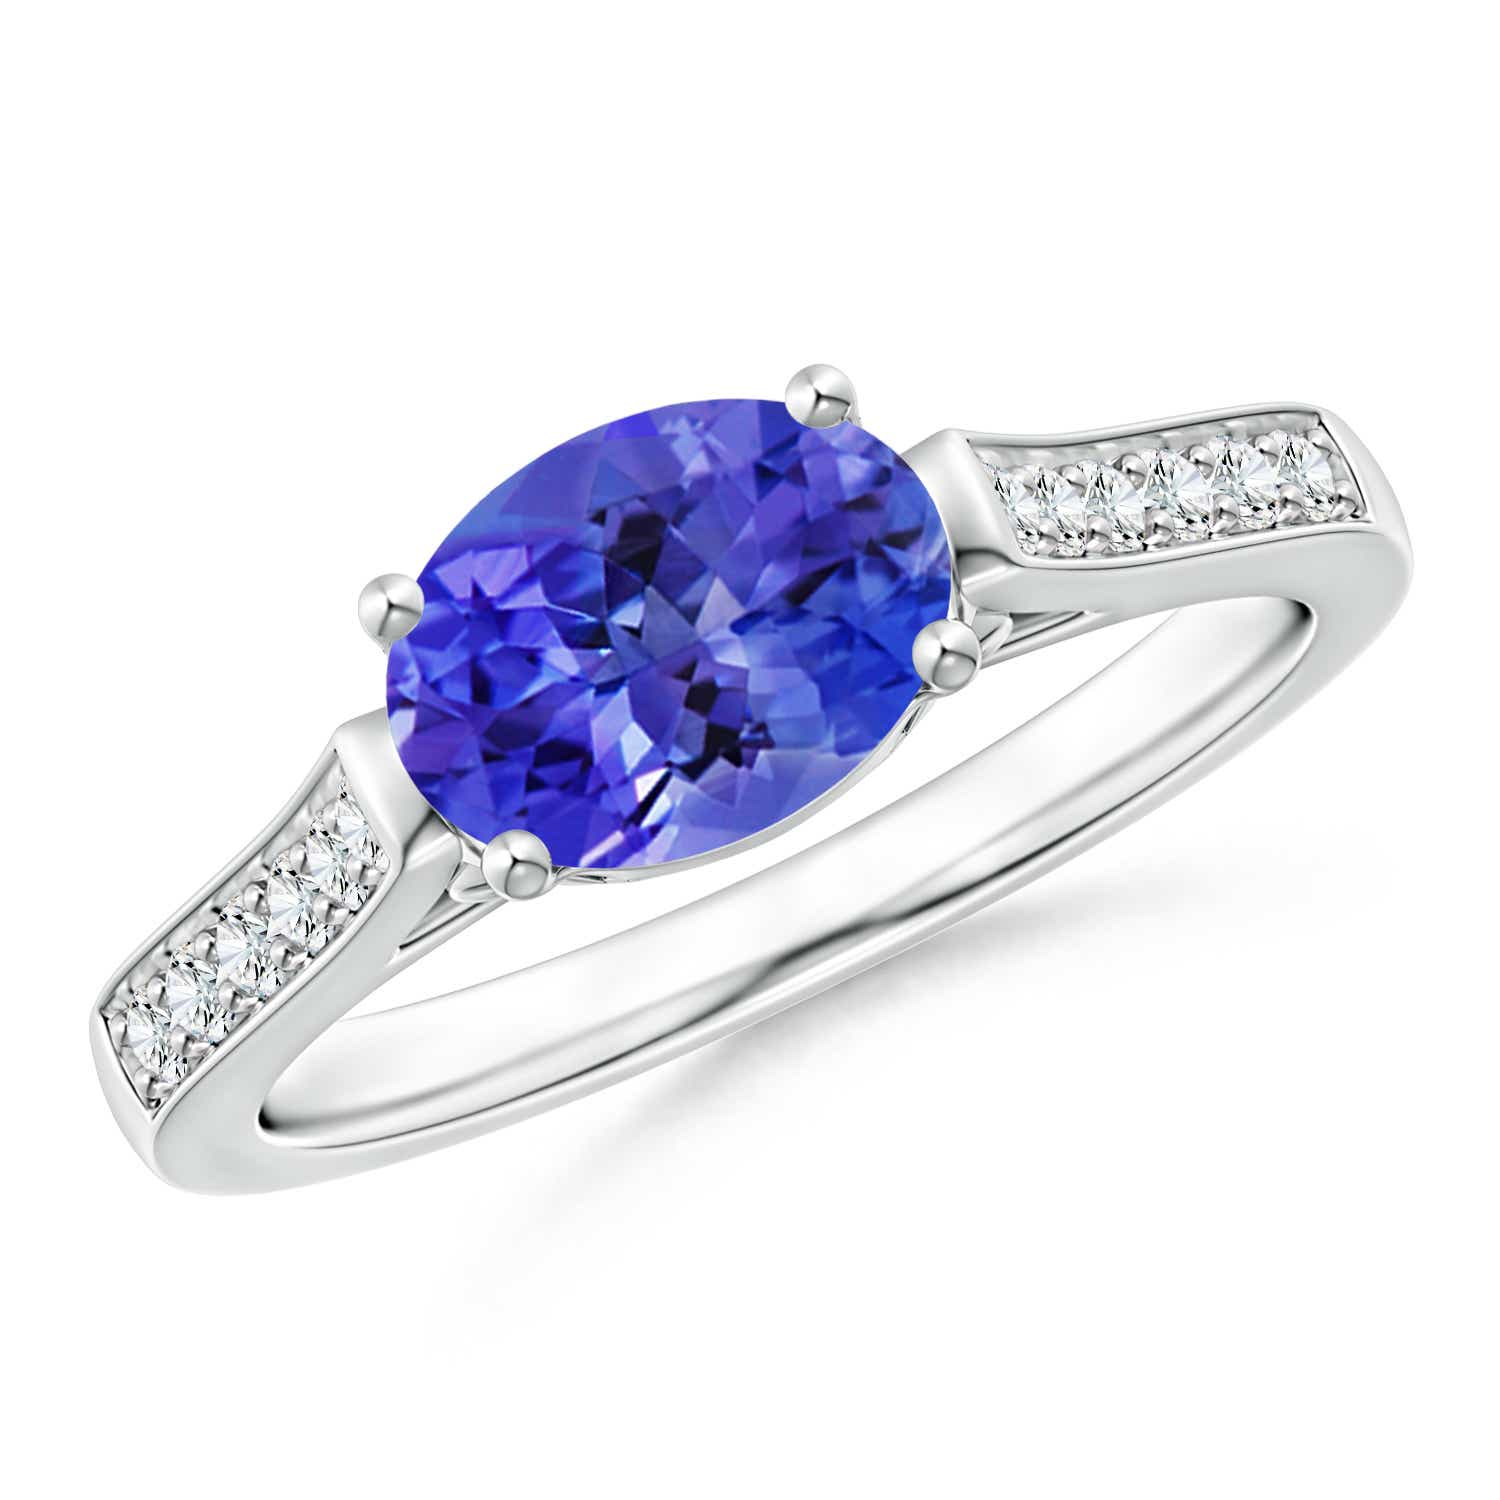 ring diamond wedding bands gold pave tanzanite oval engagement products white